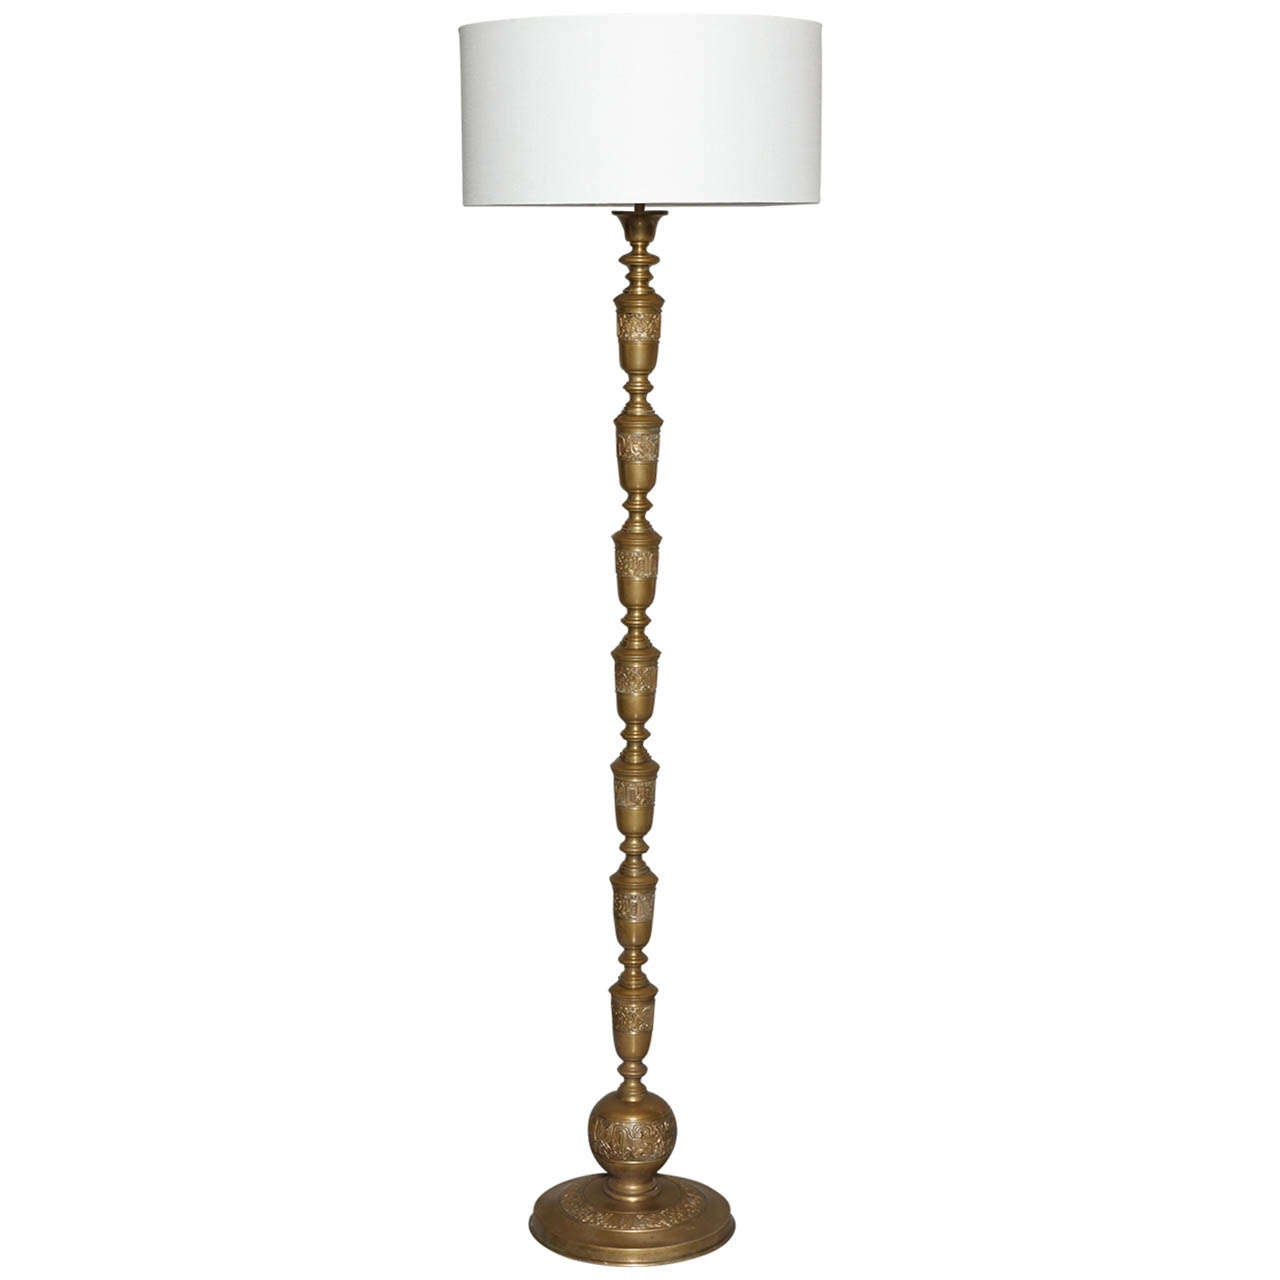 Embossed antique brass floor lamp at 1stdibs for Antique floor lamp manufacturers